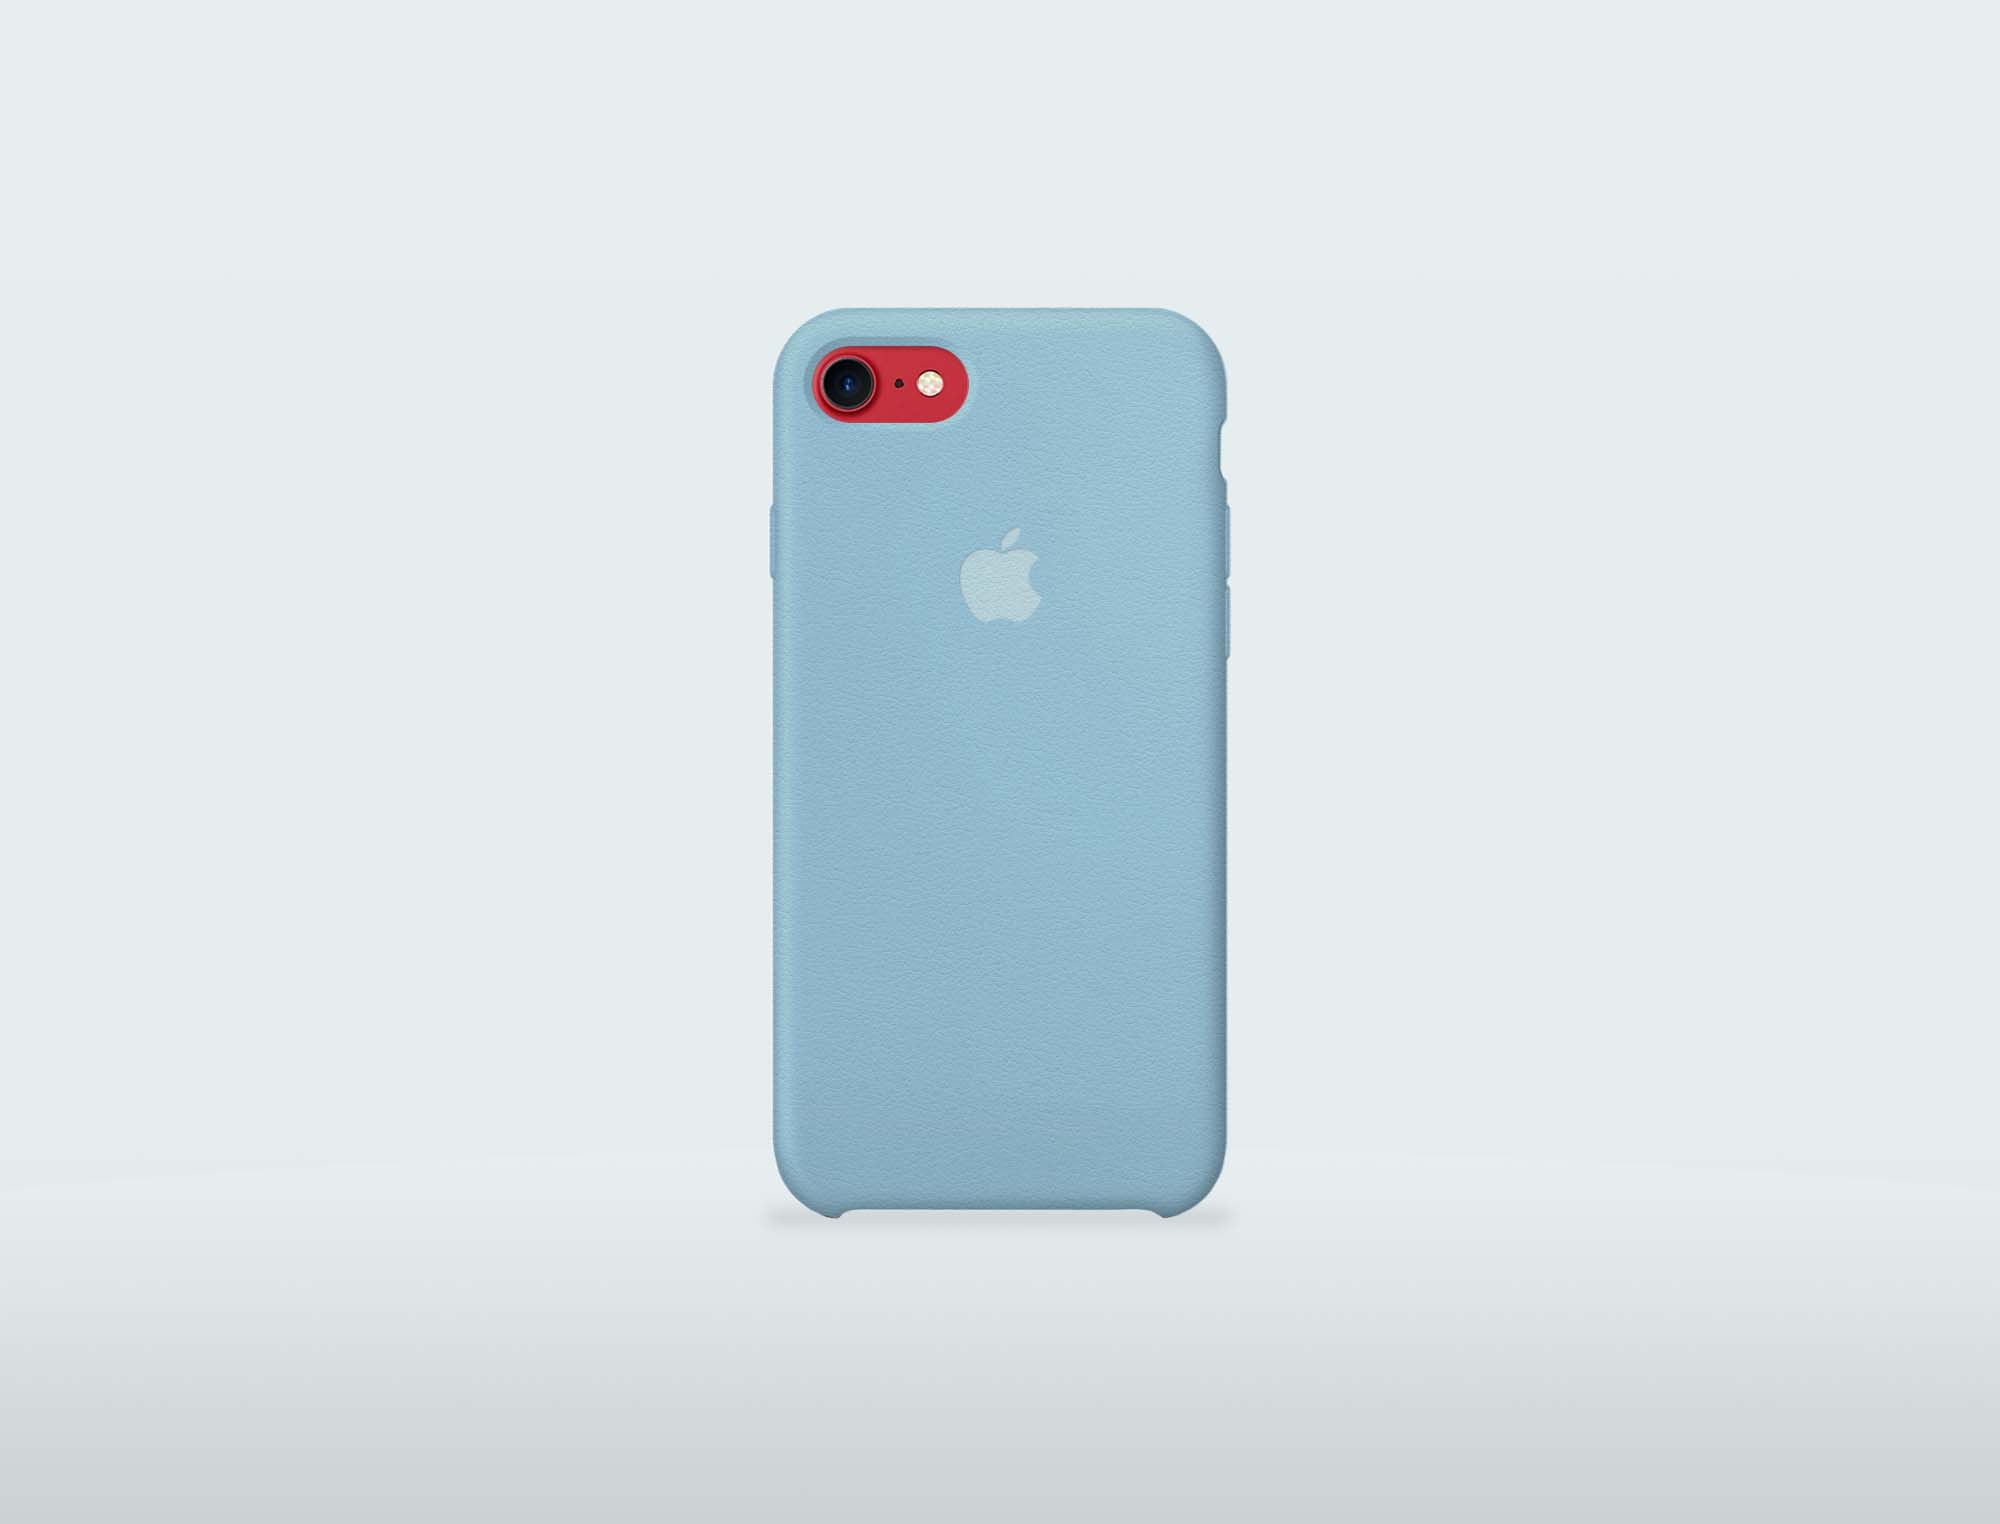 iPhone Cover Mockup